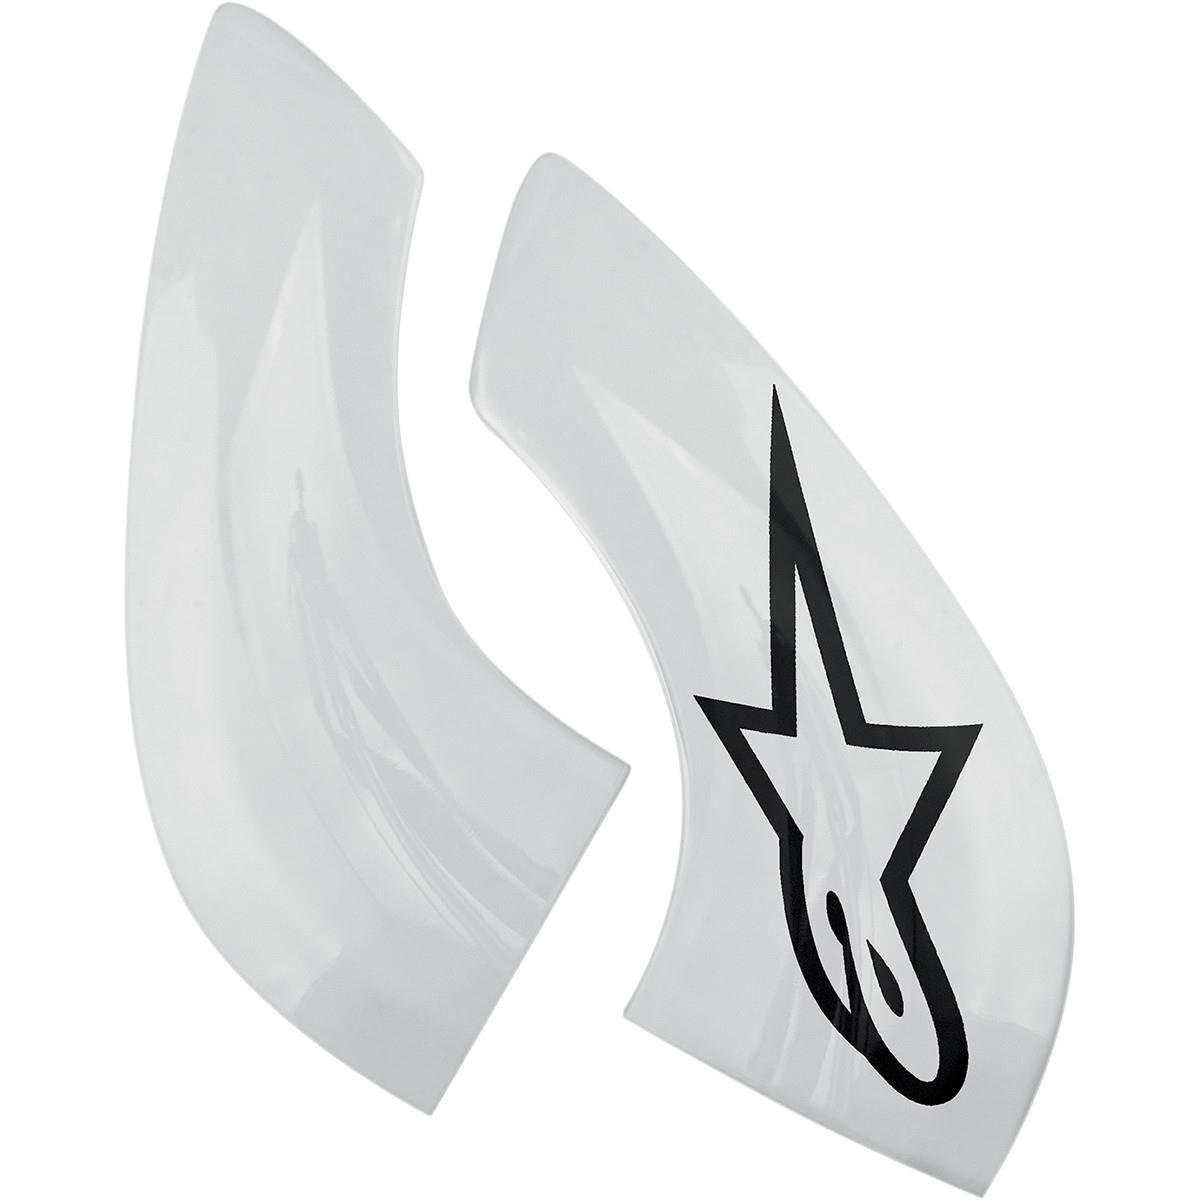 Alpinestars Men's Chin Plate For Bns Pro One Size White Black Alpinestars - US Cycling 6951114